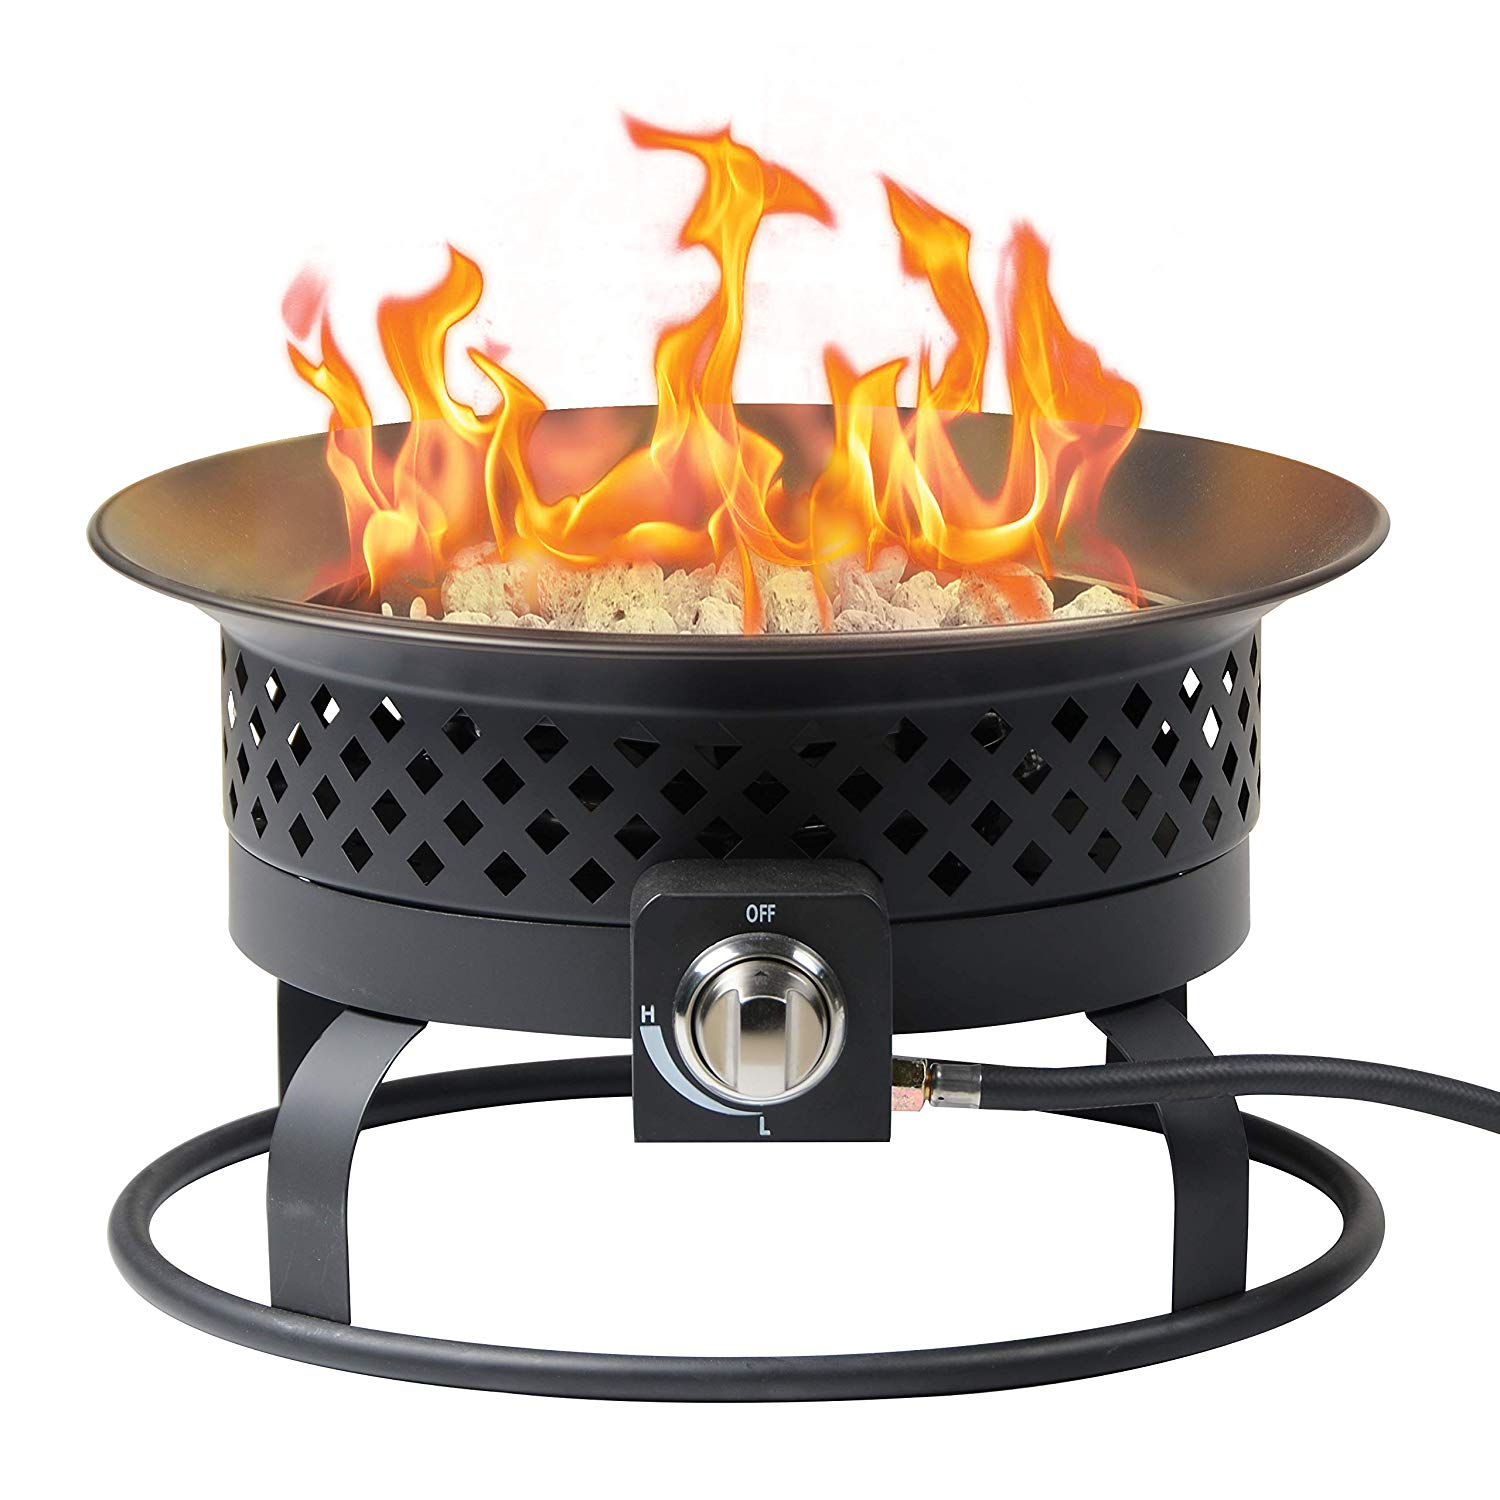 Review of Bond Bond Signature 18.5-in W 54000-BTU Bronze Portable Steel Fire Pit